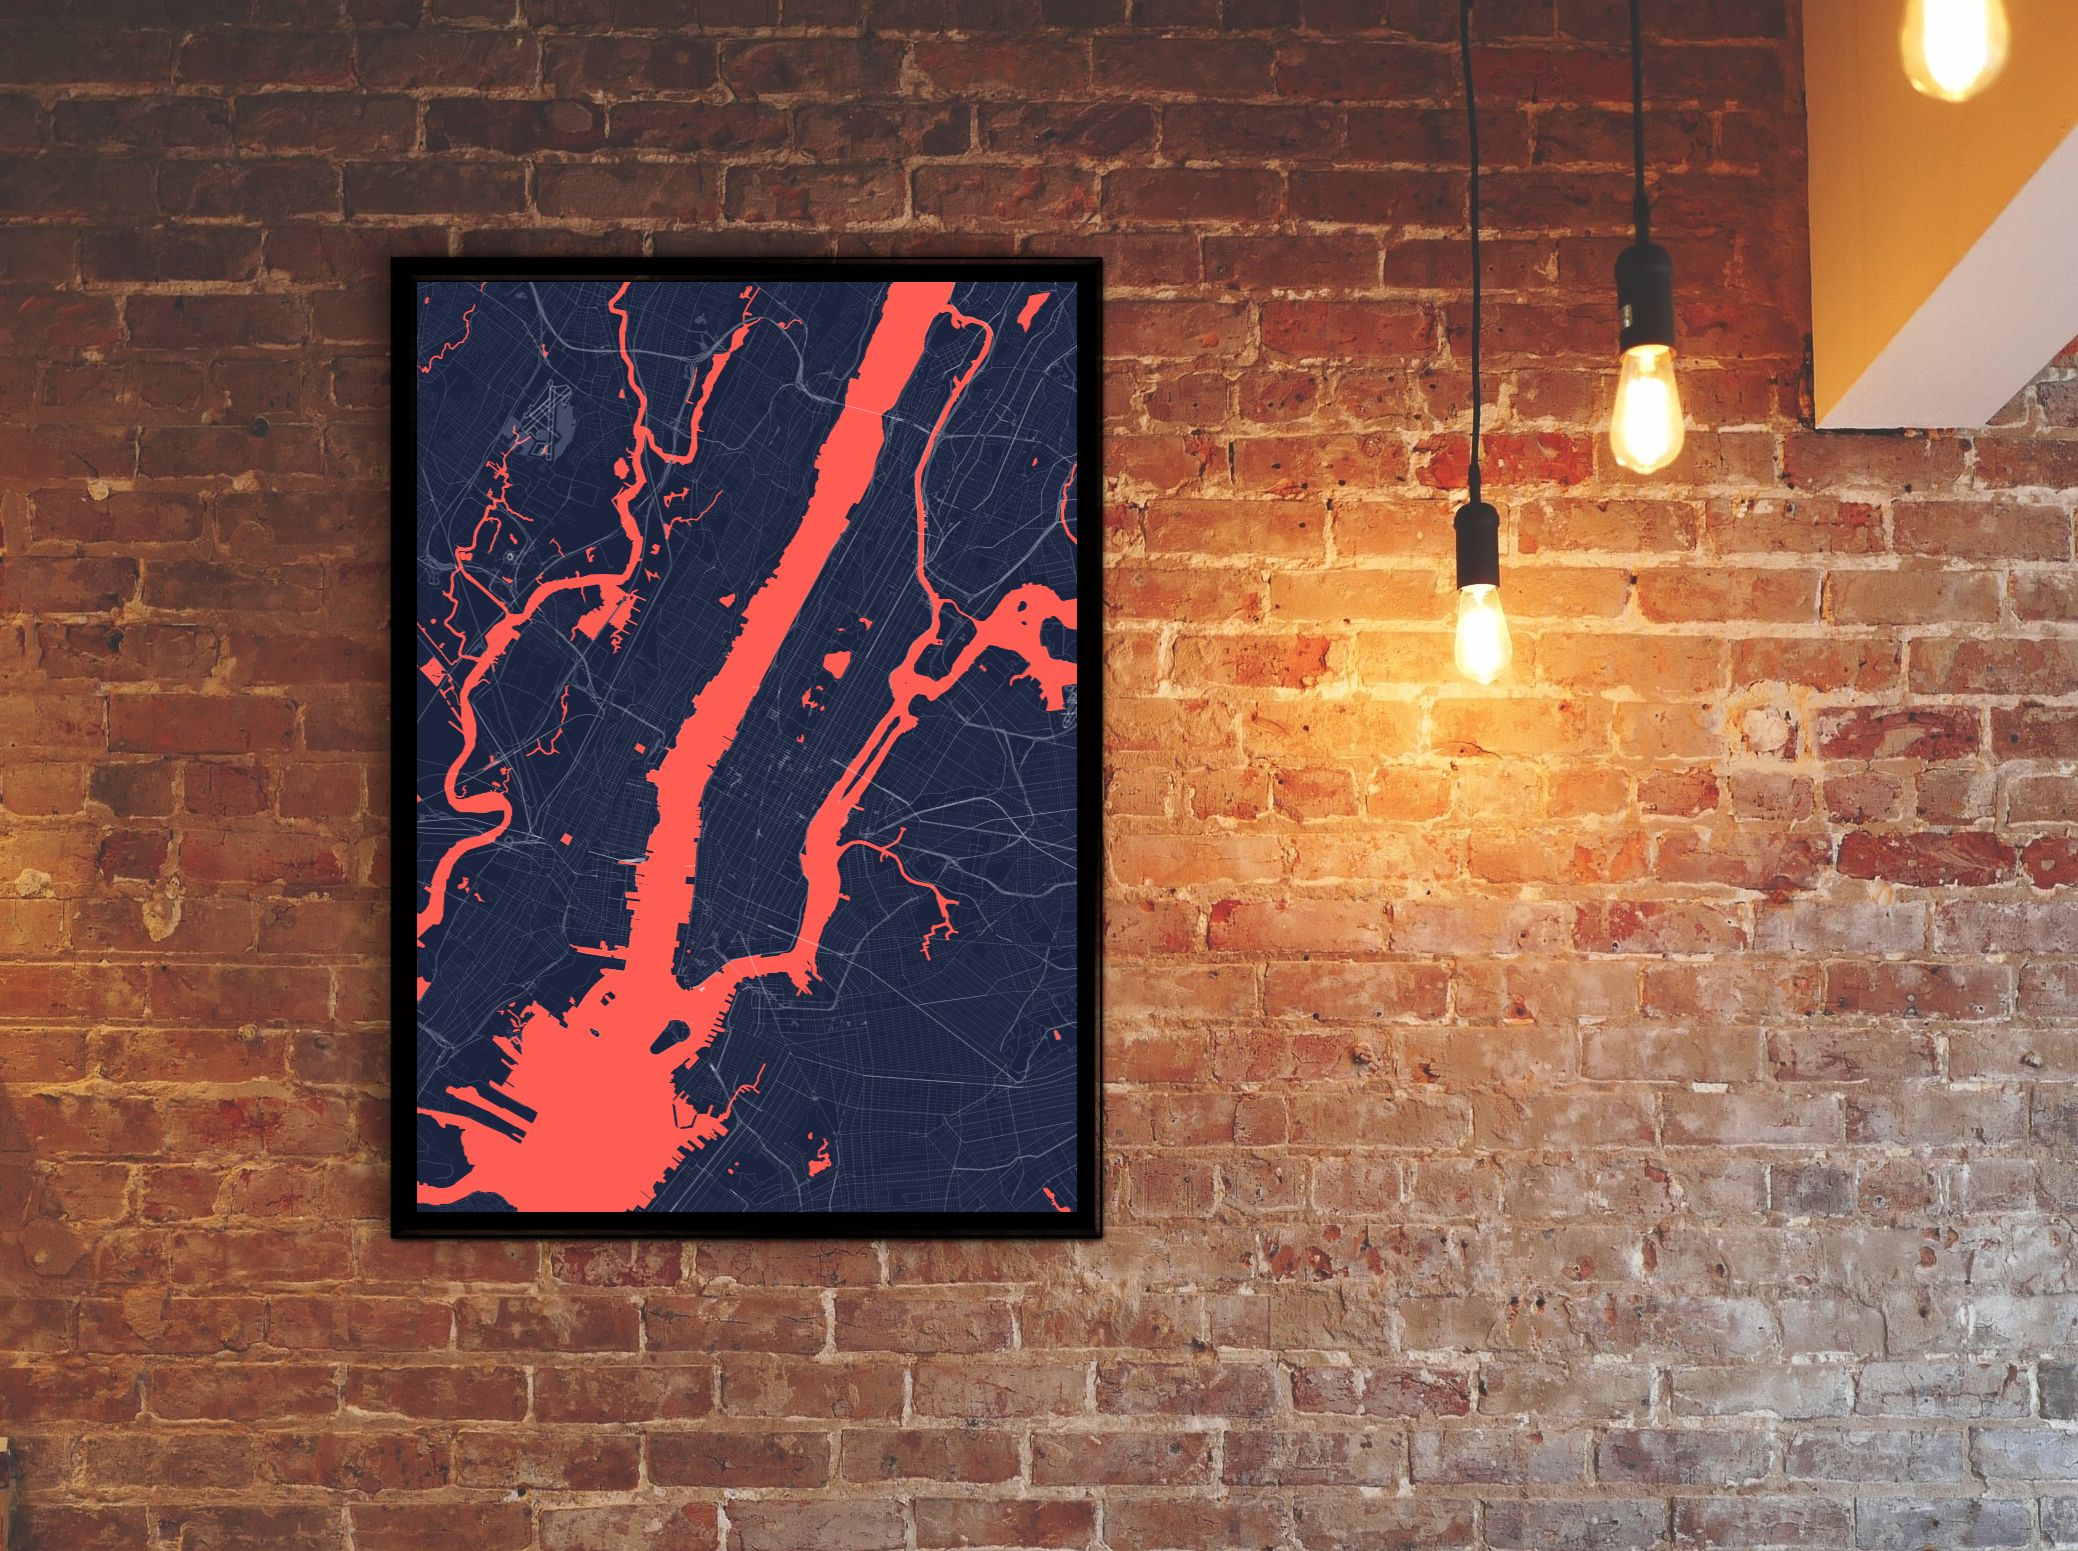 New York Outbreak Map | #print #poster #map #outbreak #zombie #newyork #art #decor #home